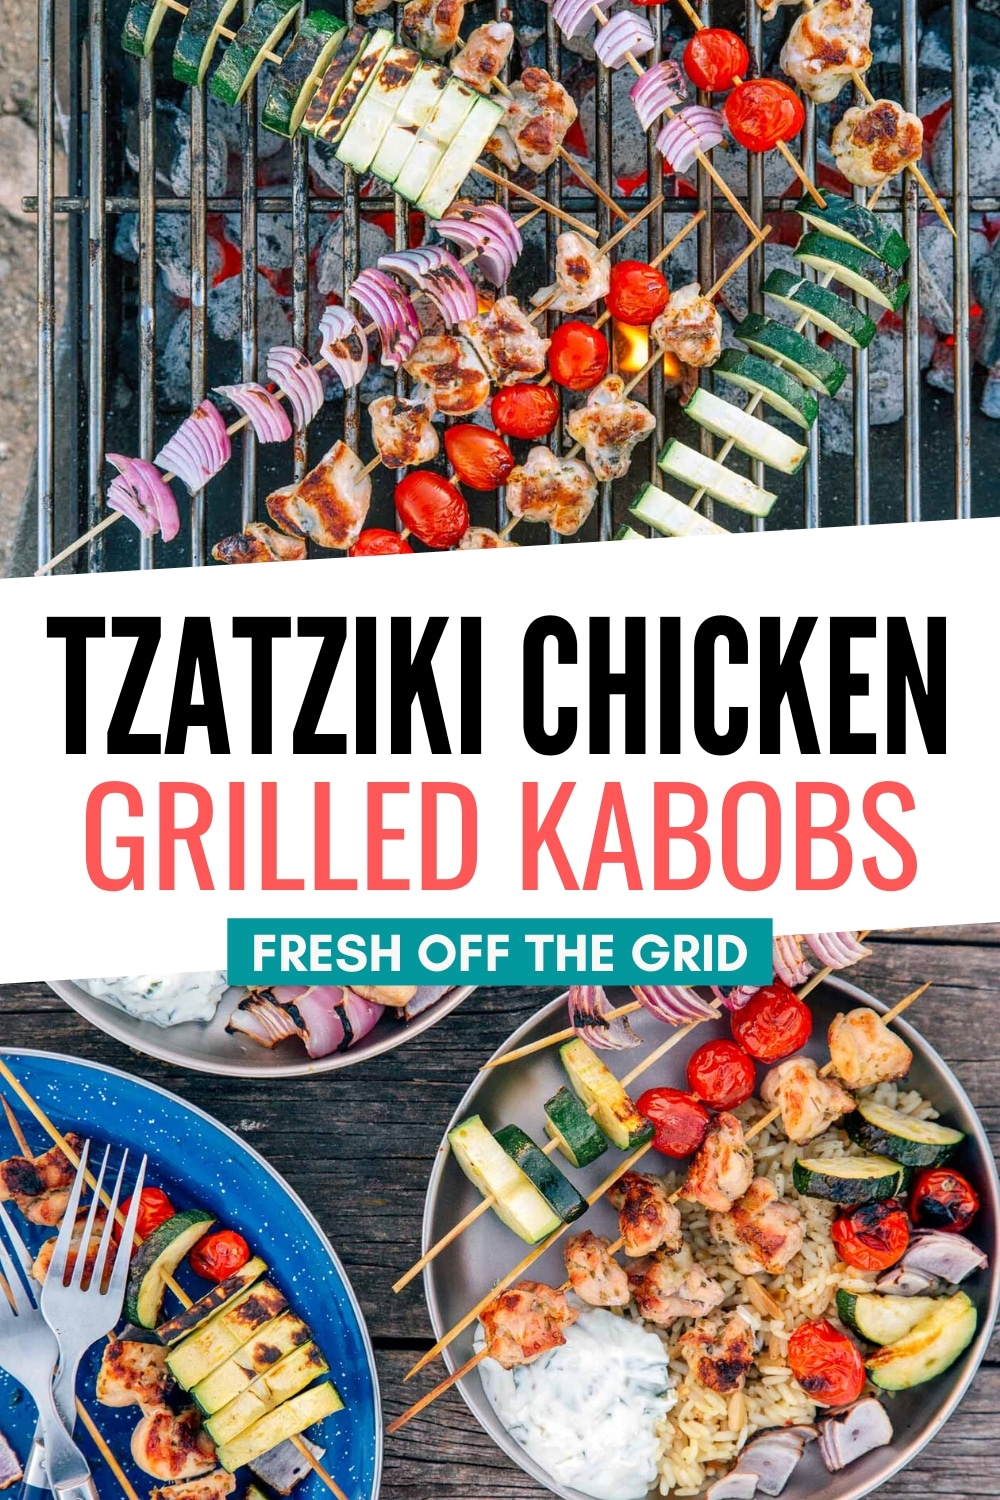 These Grilled Chicken Skewers with Tzatziki Sauce are an easy camping meal to grill over the campfire! Many of the components can be prepped ahead of time so that the meal comes together without any fuss. via @freshoffthegrid